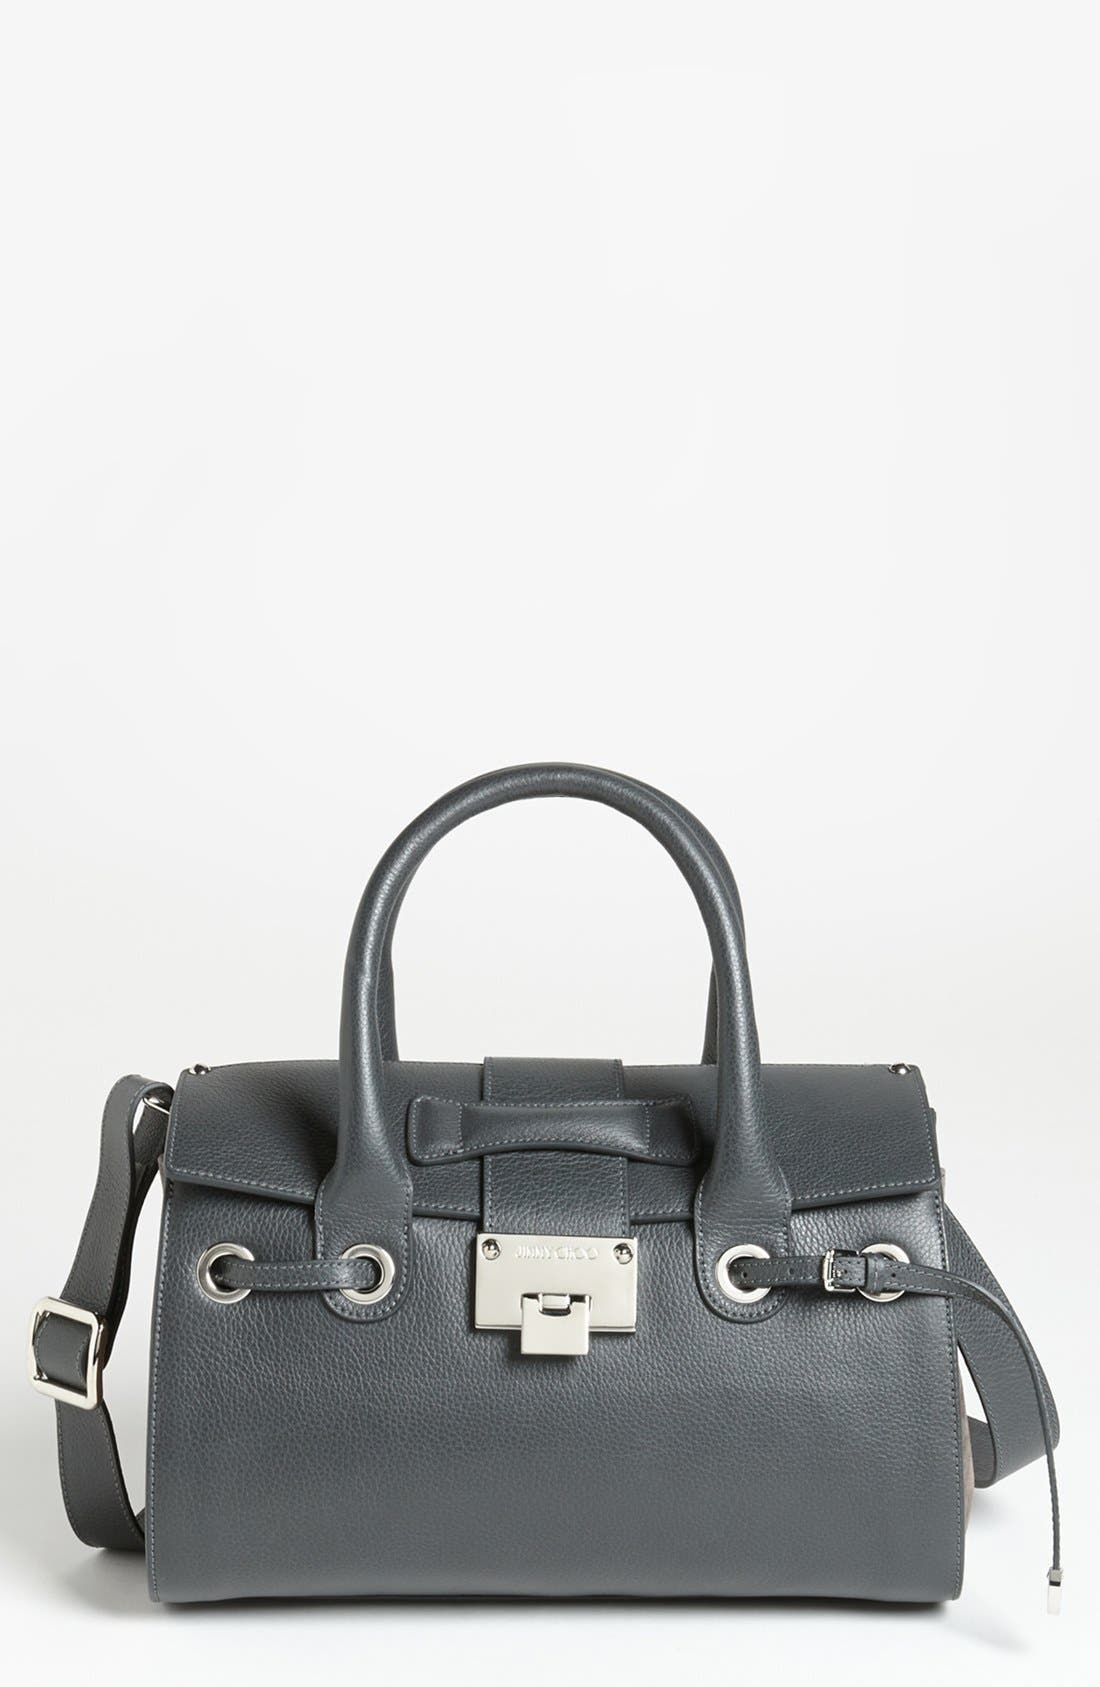 Alternate Image 1 Selected - Jimmy Choo 'Small Rosa' Leather Satchel